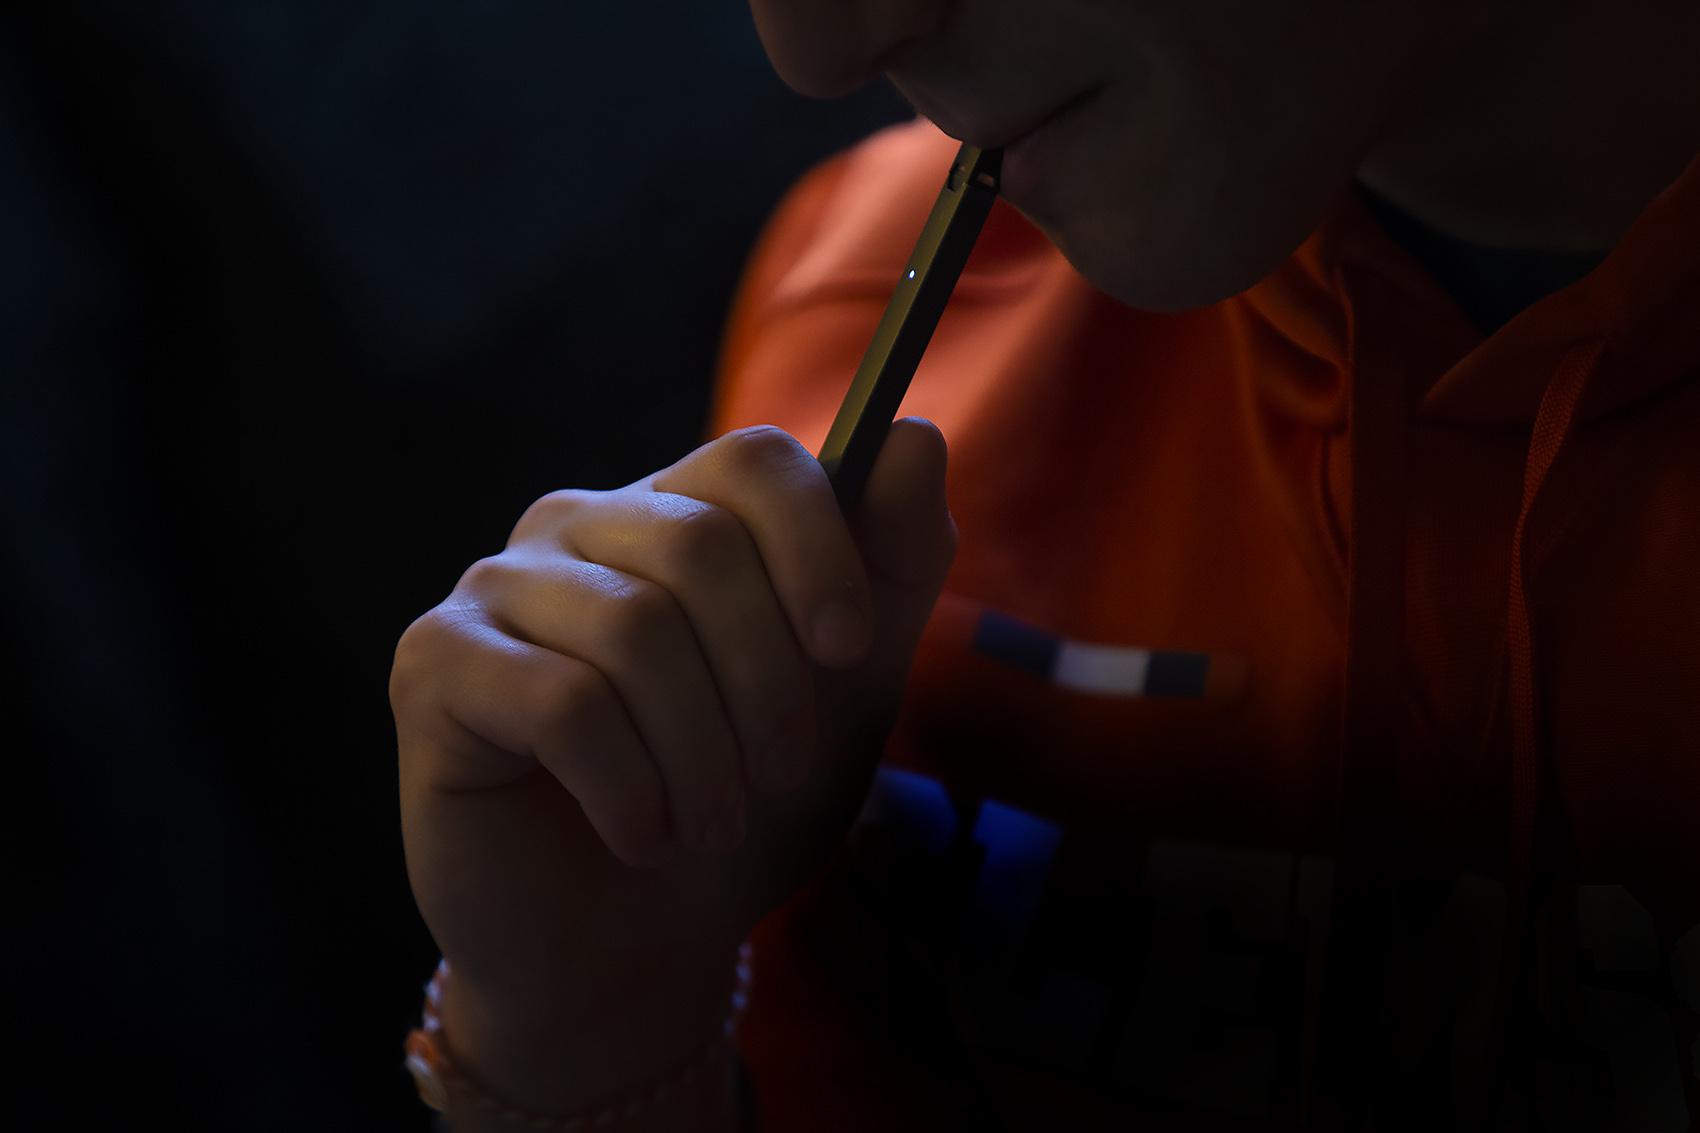 Victor uses a JUUL vaping device at home. (Jesse Costa/WBUR)